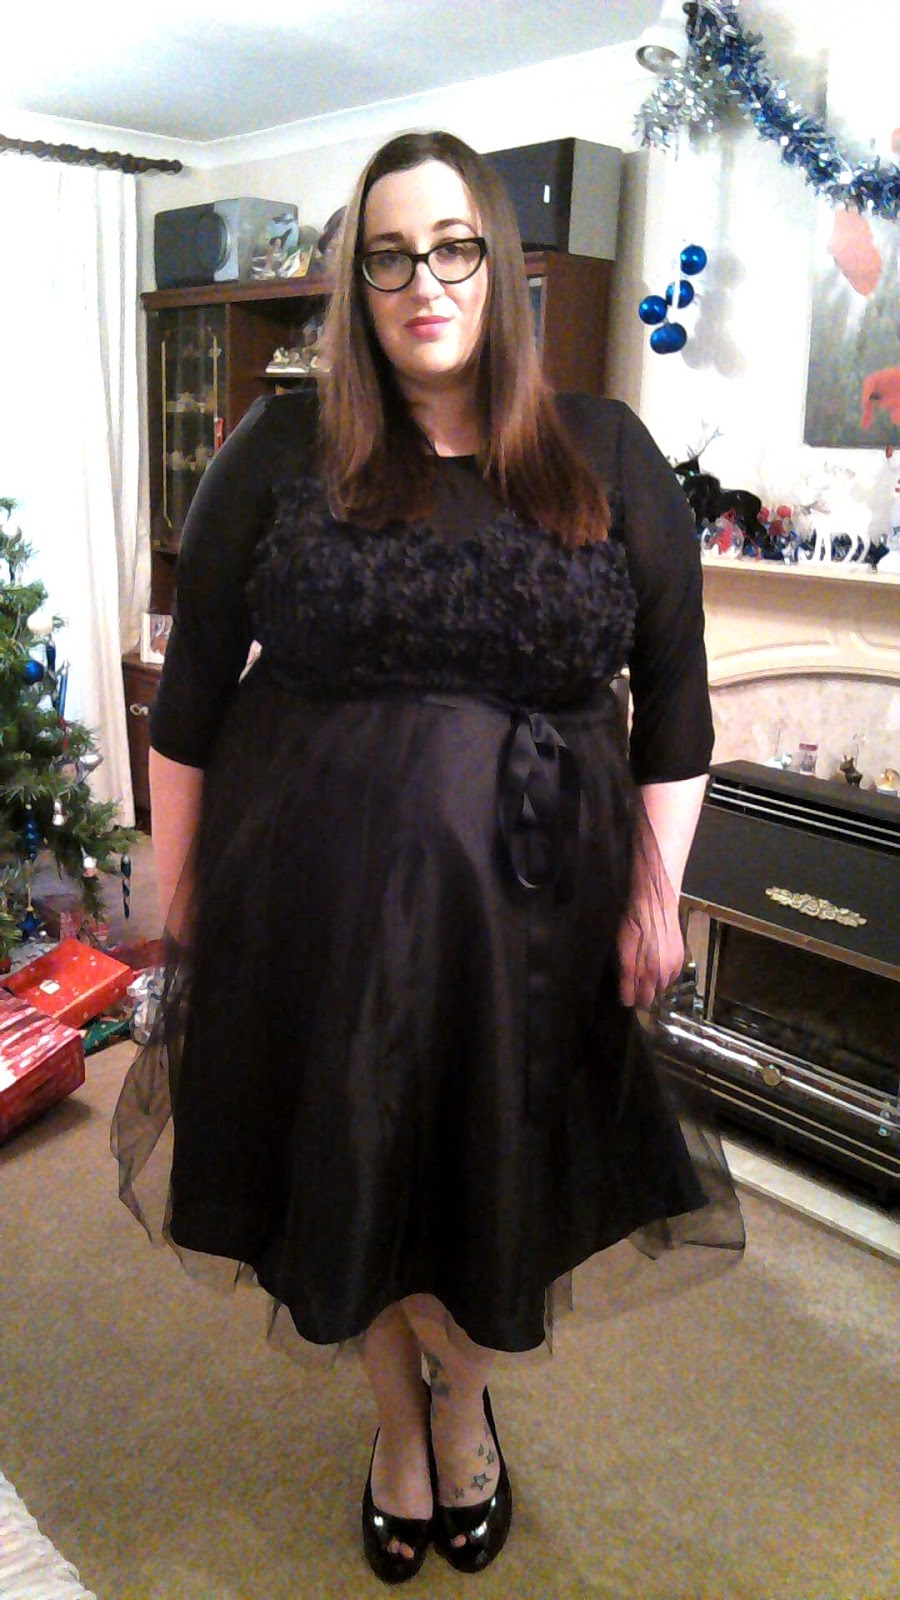 12 Days Of Christmas Dresses #11 - Does My Blog Make Me